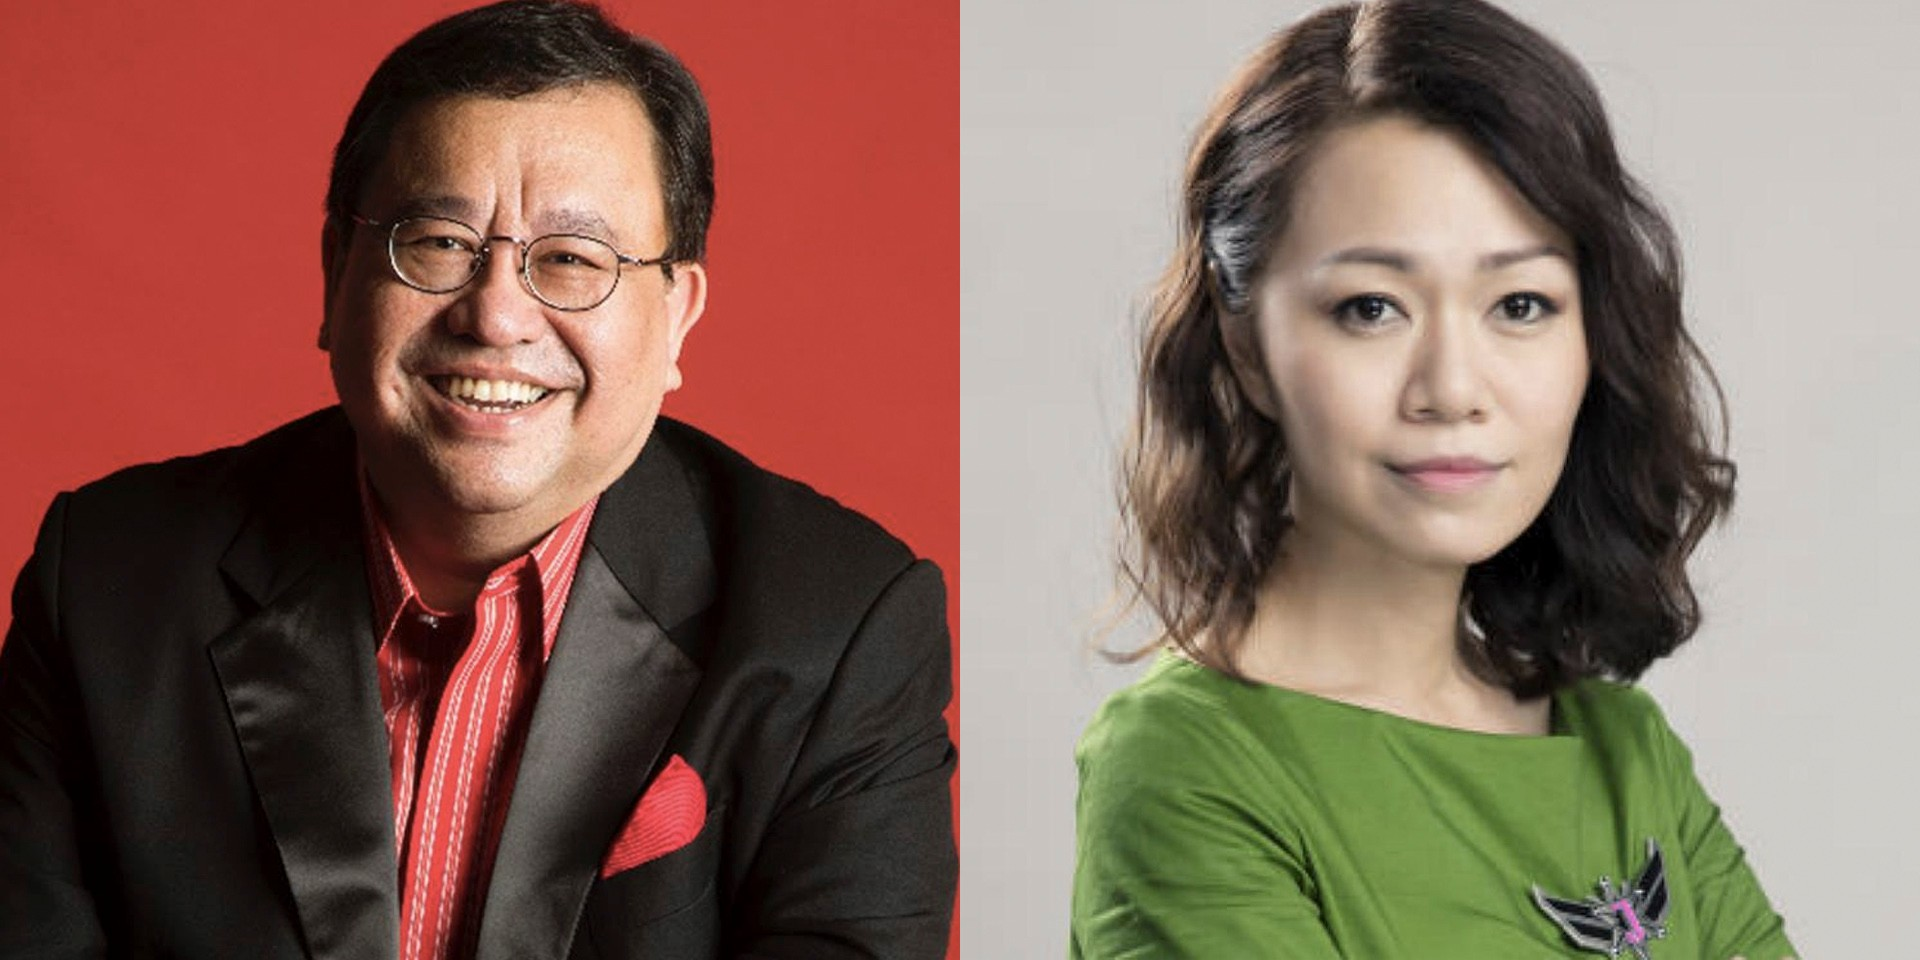 Esplanade gears up for jazz-themed December with Jeremy Monteiro, Joanna Dong and more